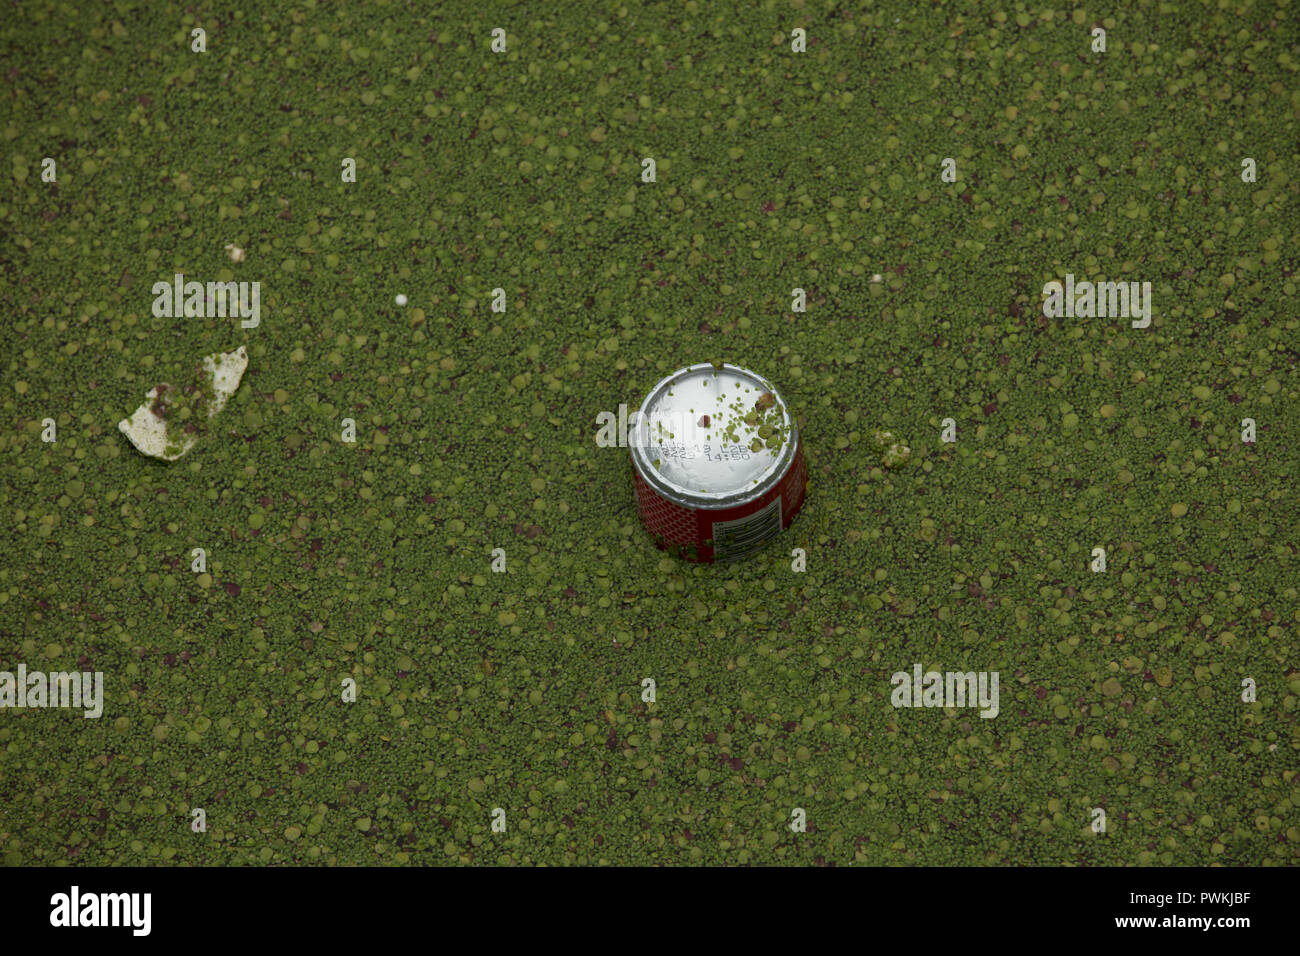 Turned over beverage can floating in the water of Limehouse Basin London, UK increasing pollution of canals, rivers and seas, needing urgent solutions - Stock Image